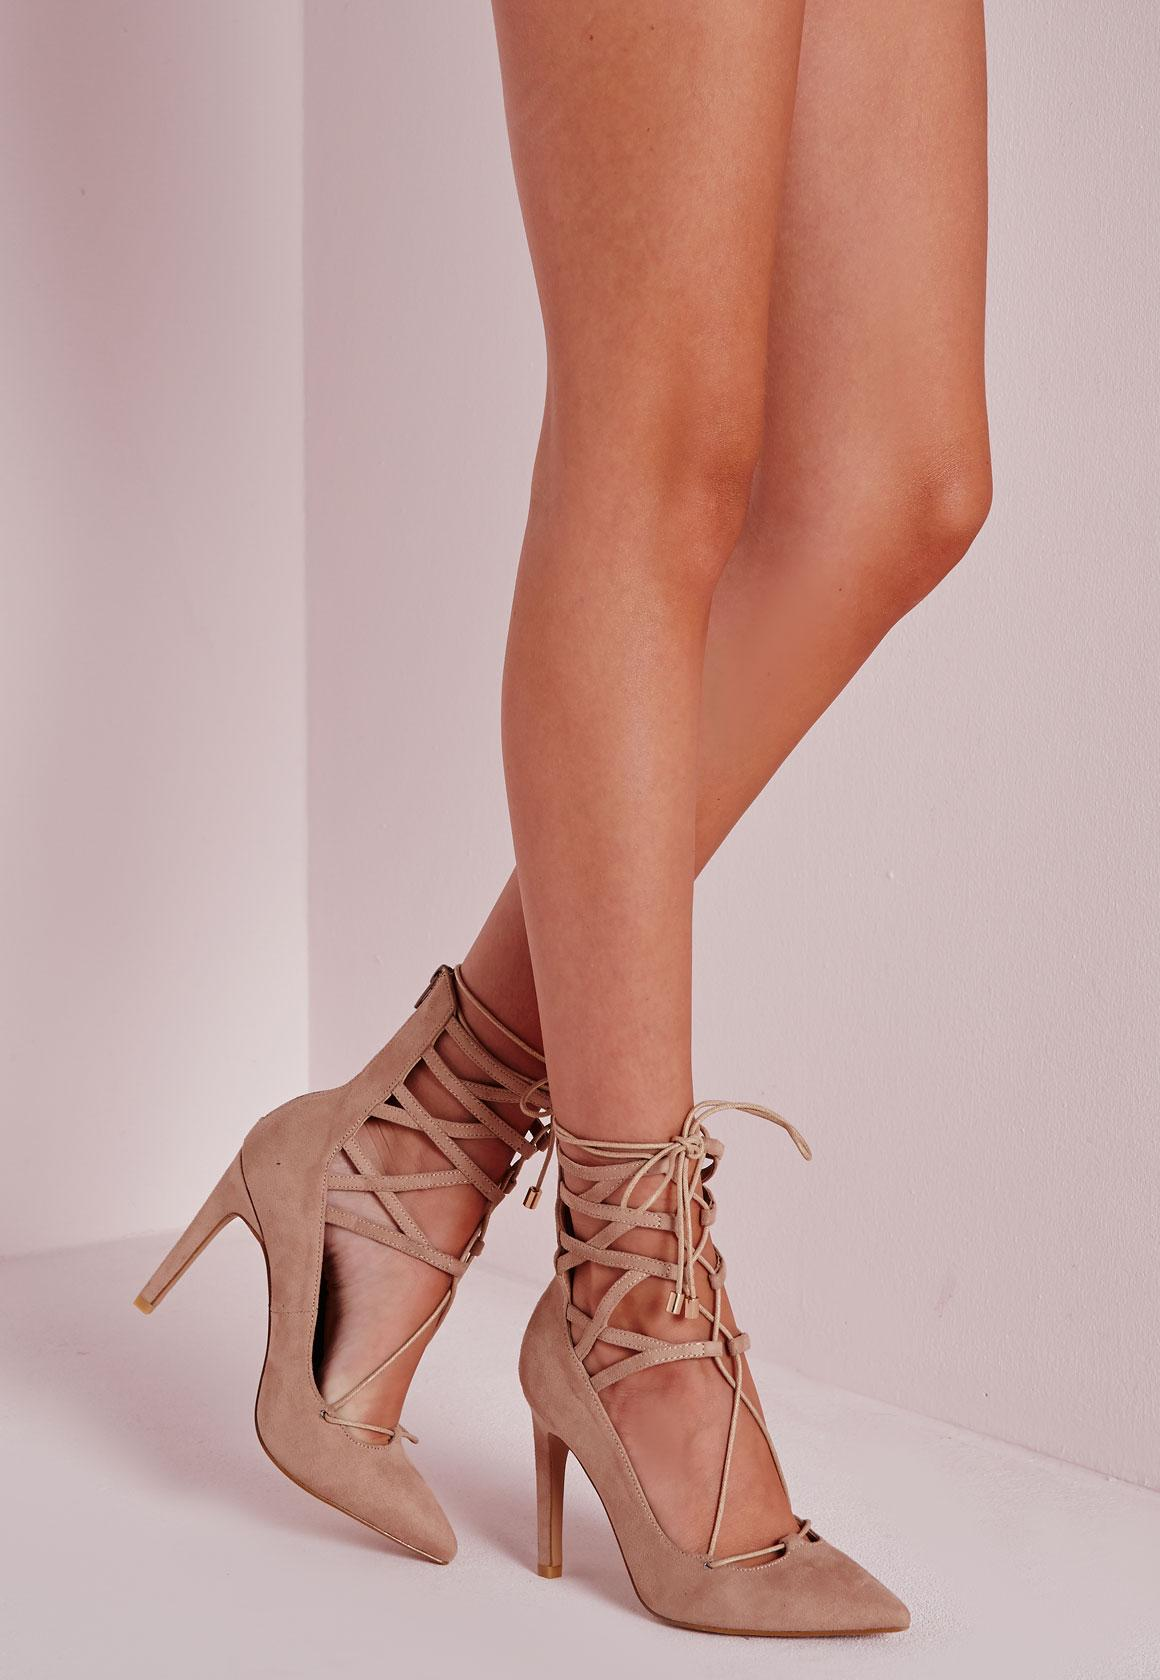 Lace Up Stiletto Heeled Shoes Nude | Missguided